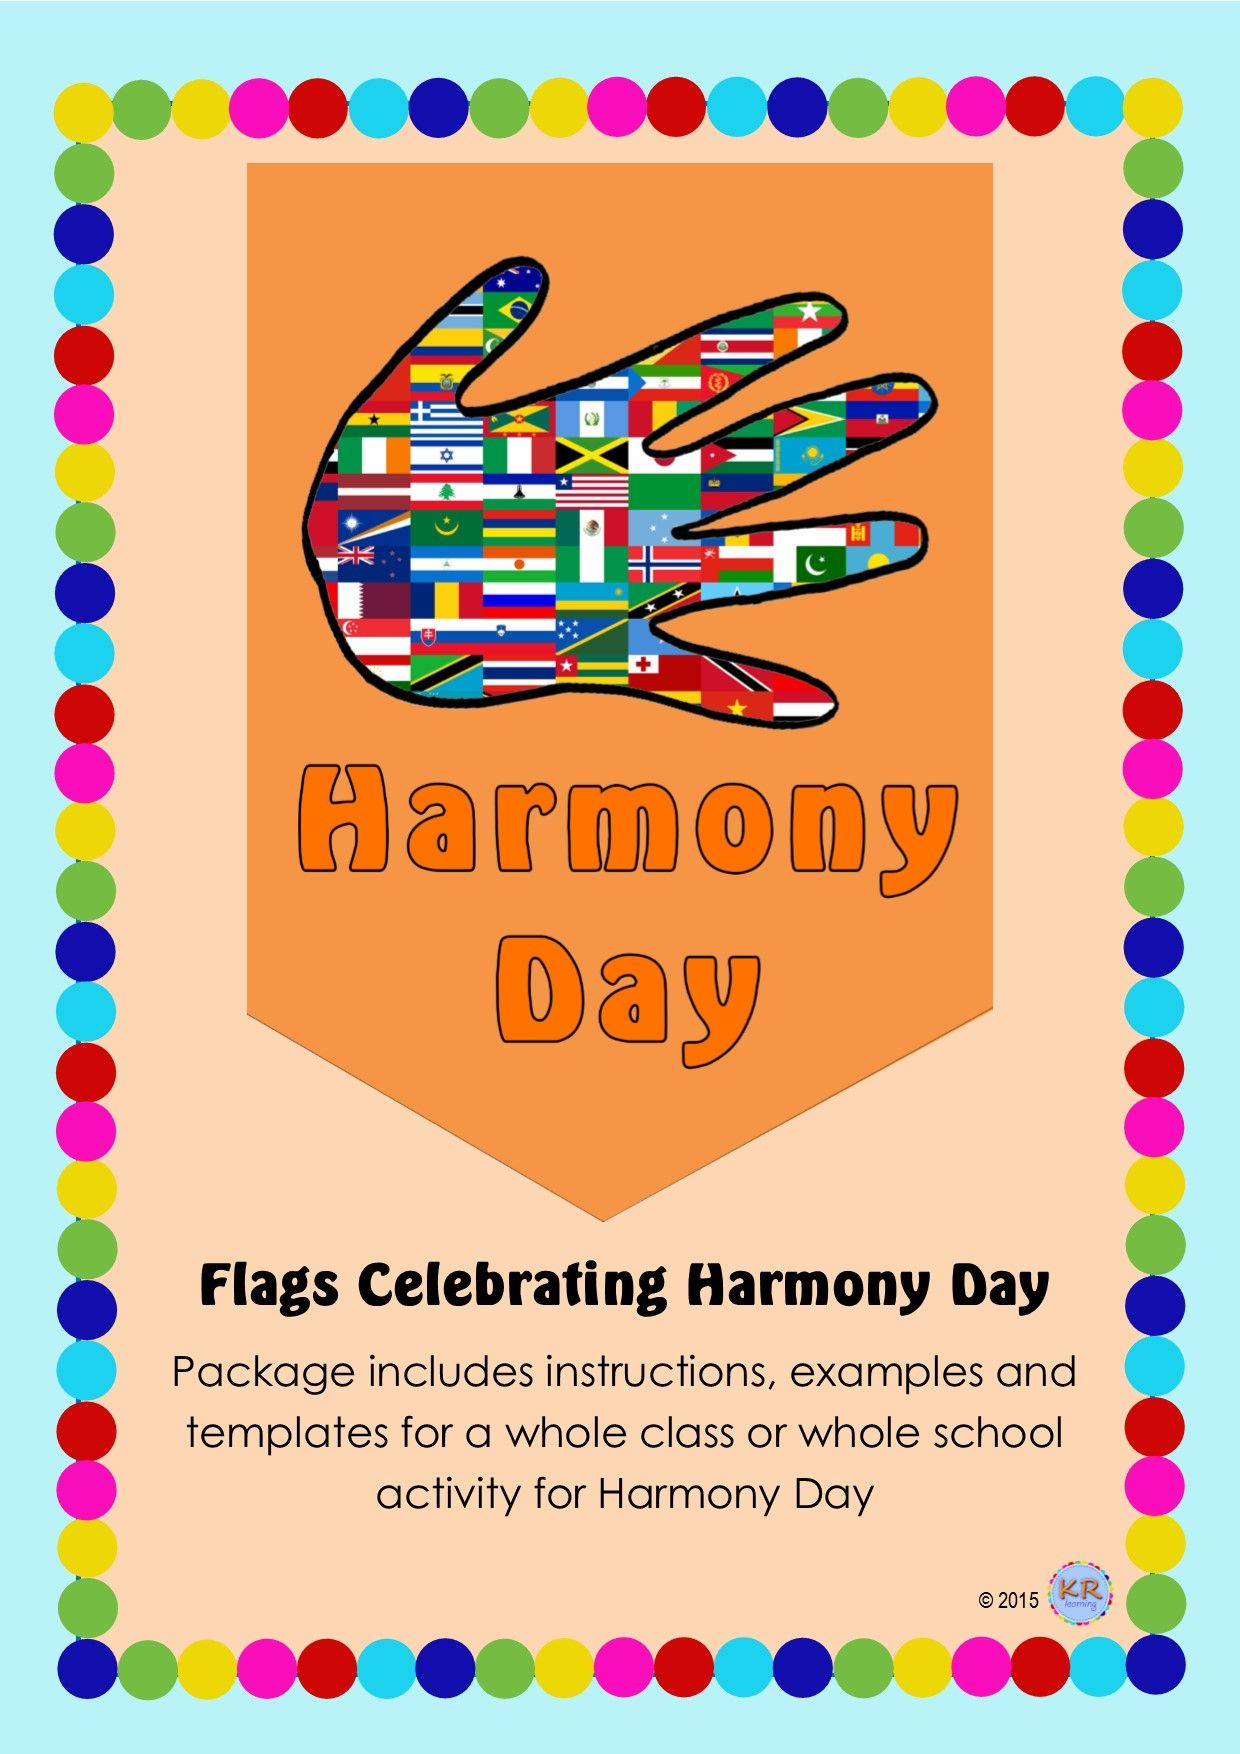 Harmony Day Everyone Belongs Celebration Flags Cultural Diversity Tolerance Harmony Day Cultural Diversity Childrens Activities